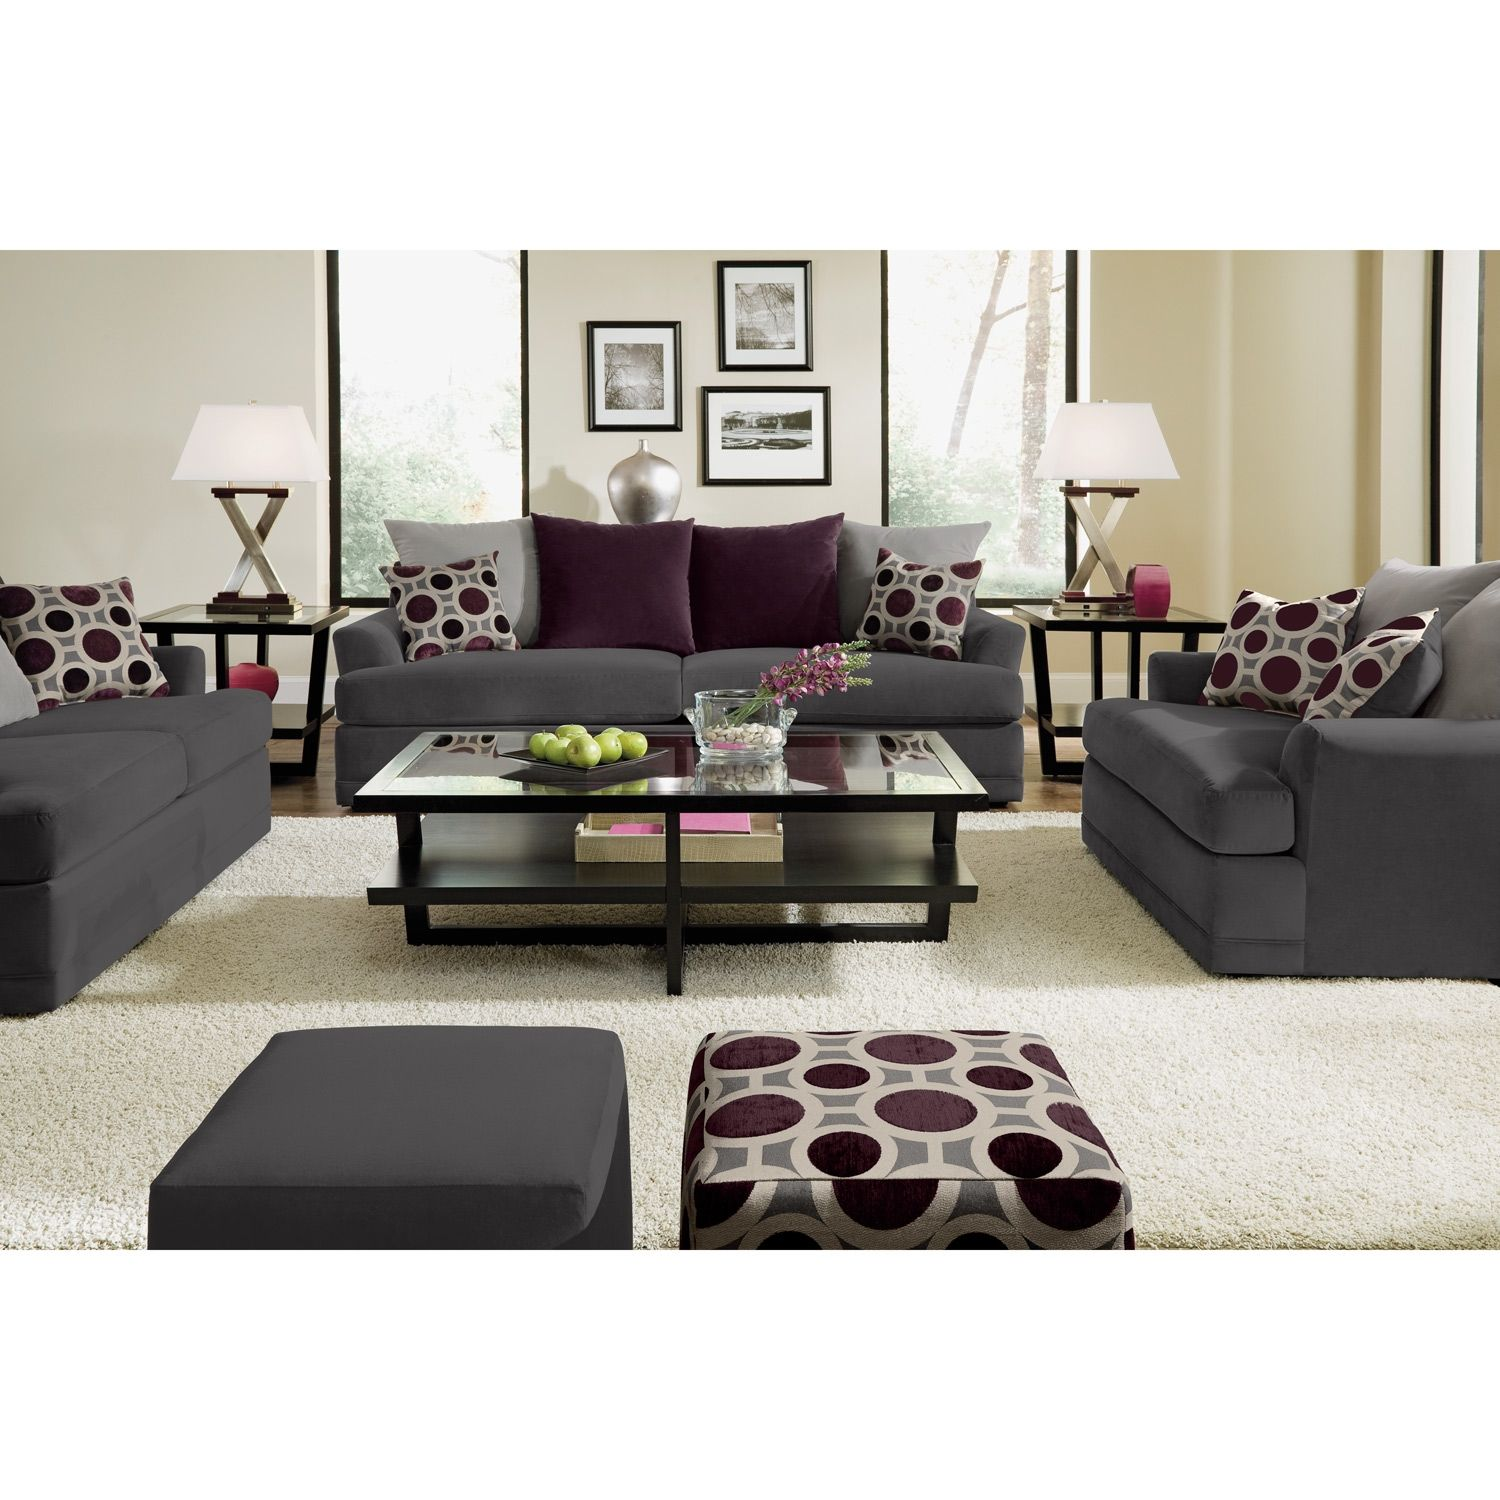 Maybe Living Room Decor Furniture Value City Furniture City